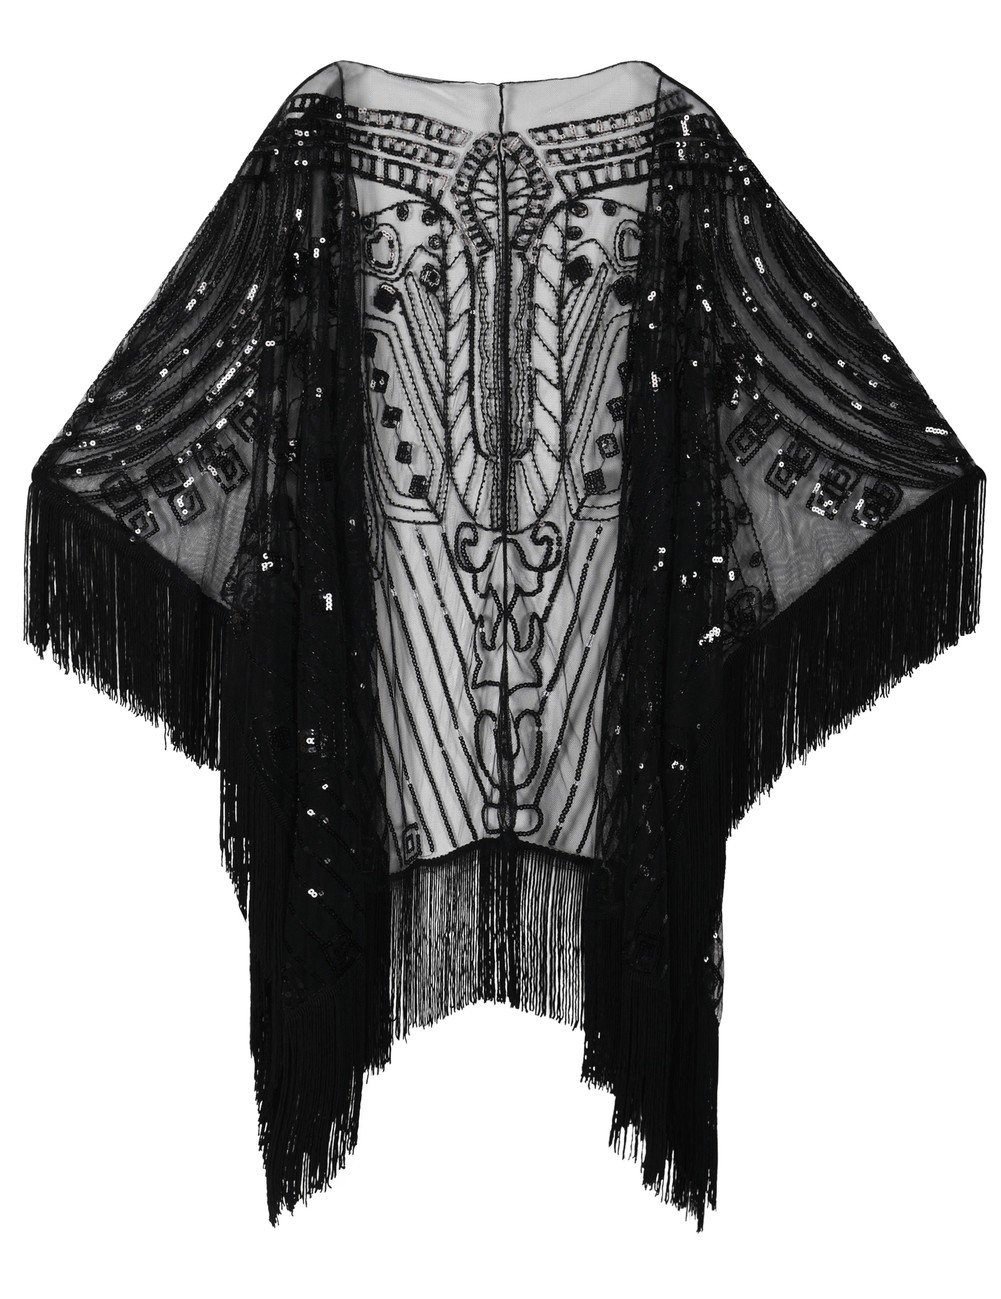 1900-1910s Clothing Kayamiya Womens Evening Shawl Wraps 1920s Sequin Beaded Cape With Fringe $33.99 AT vintagedancer.com